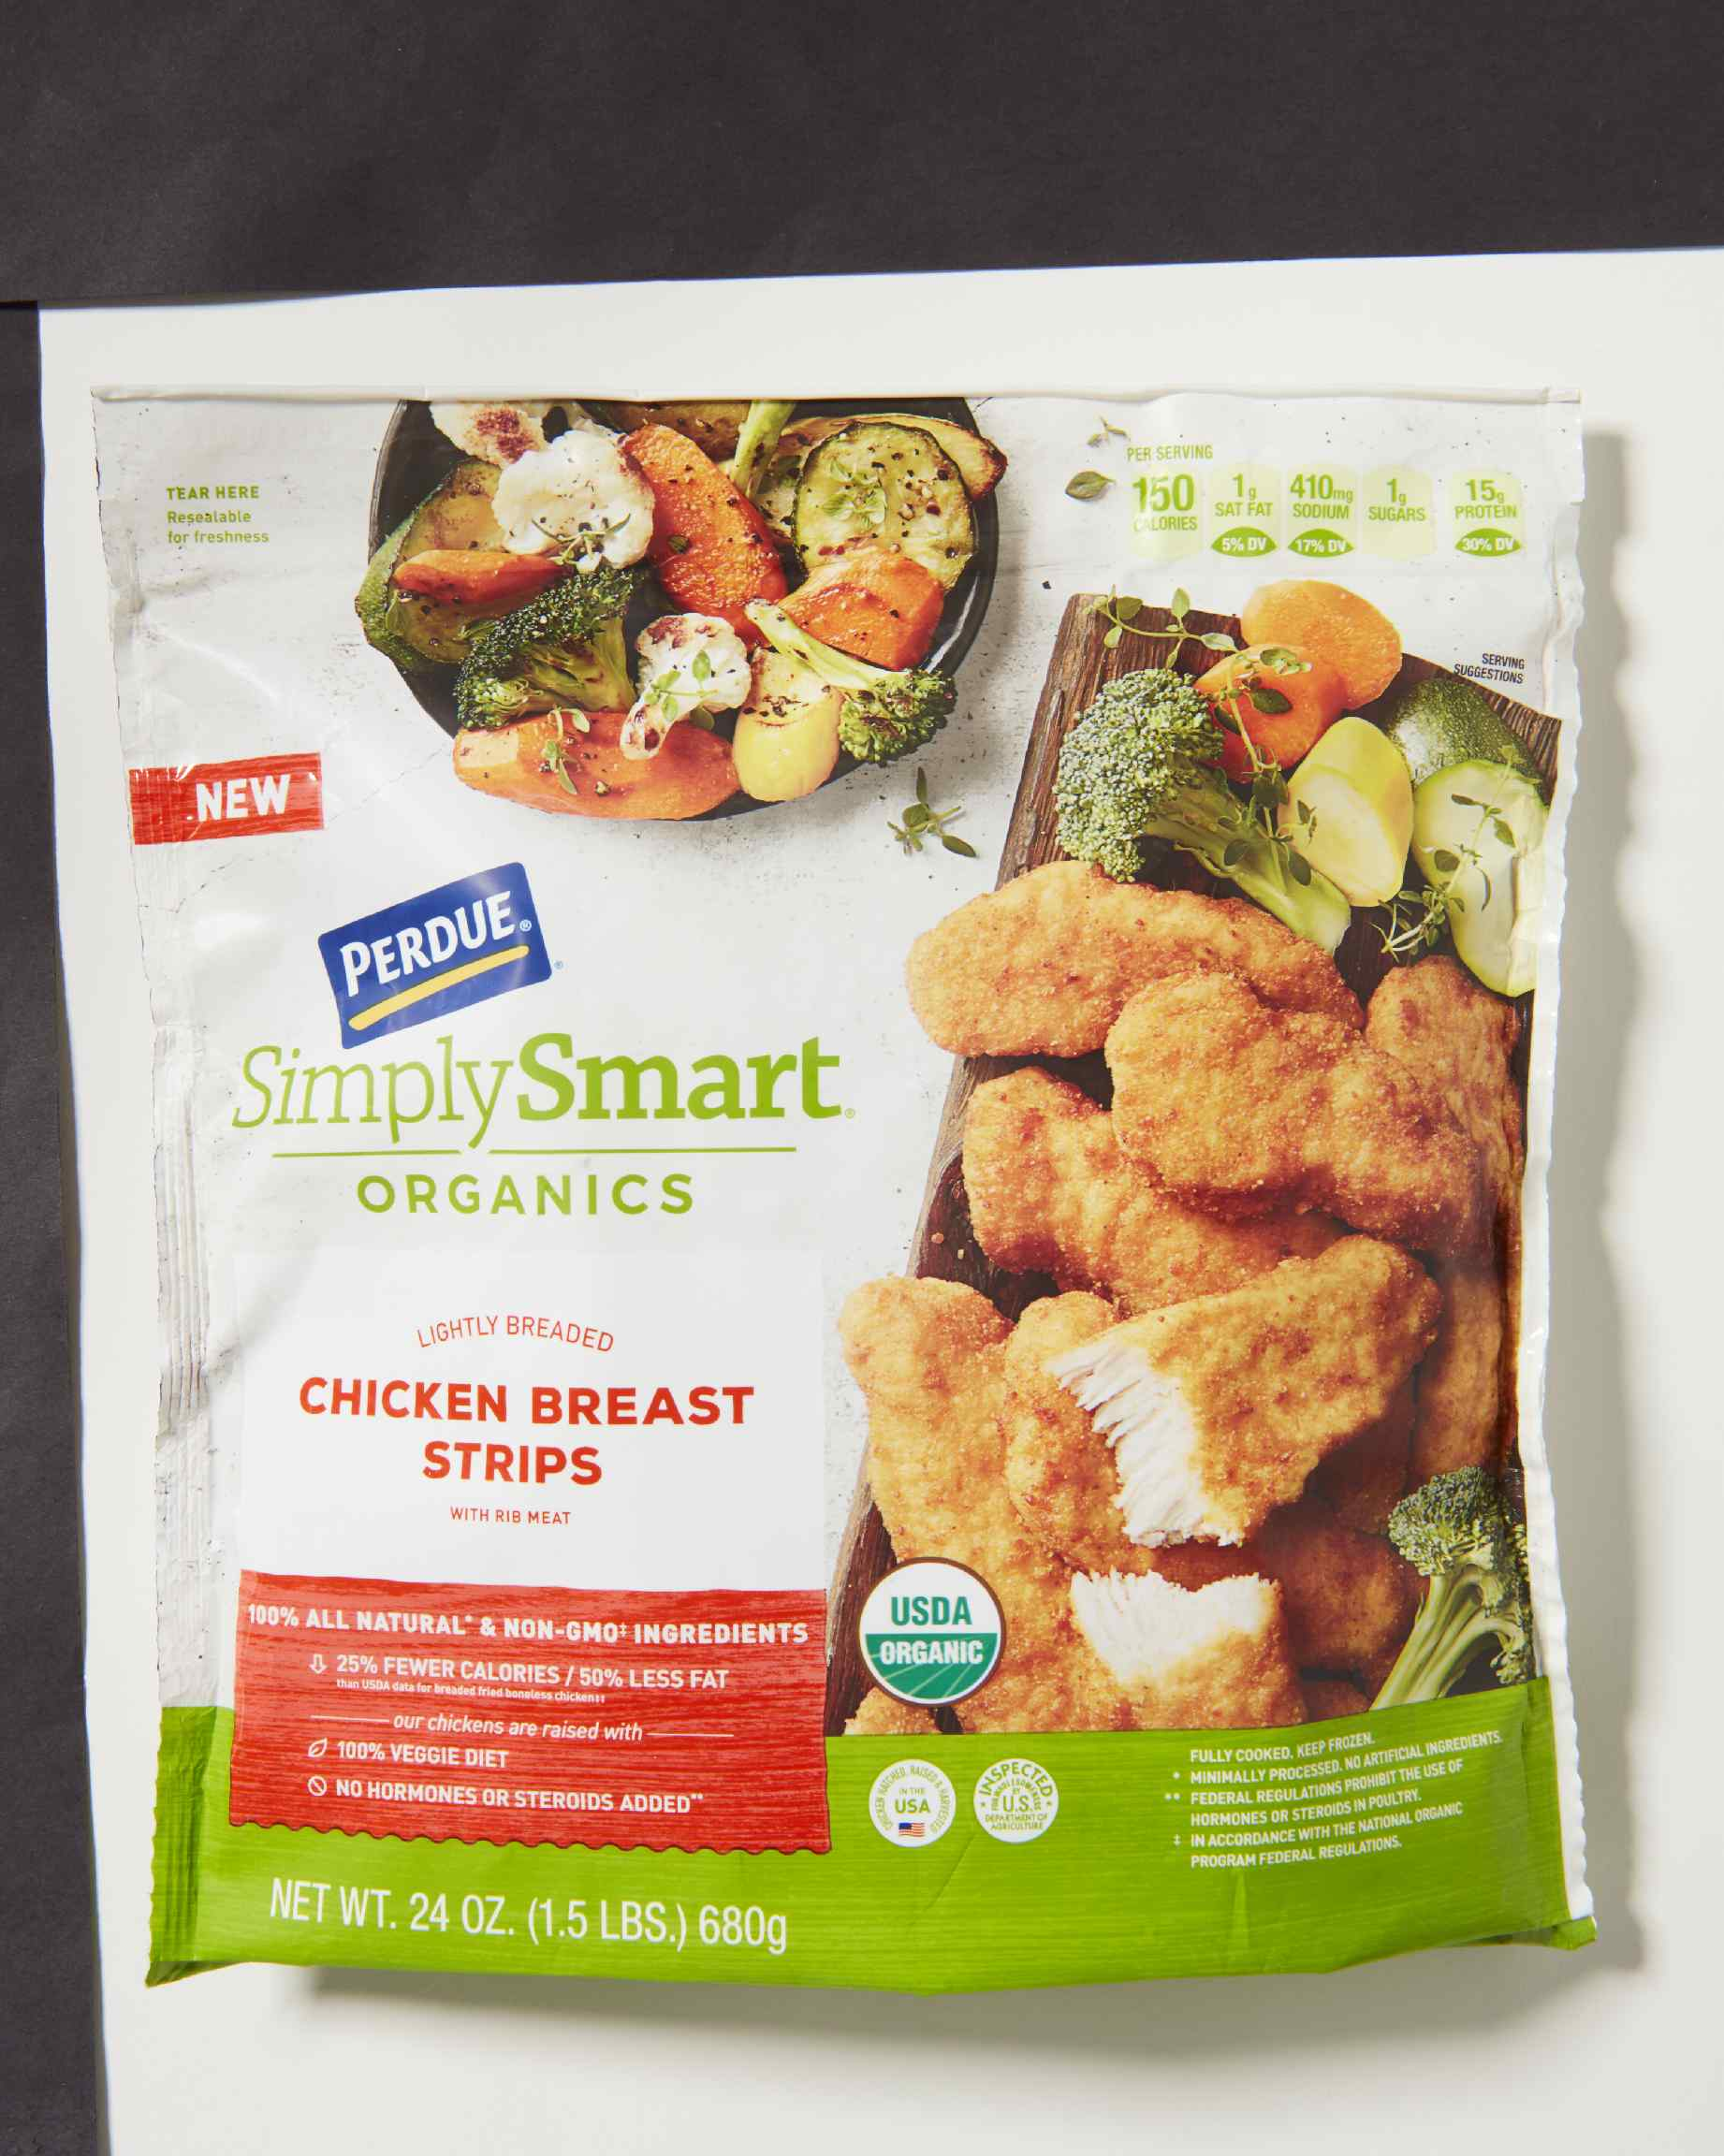 Perdue Simply Smart Organics Lightly Breaded Chicken Breast Strips